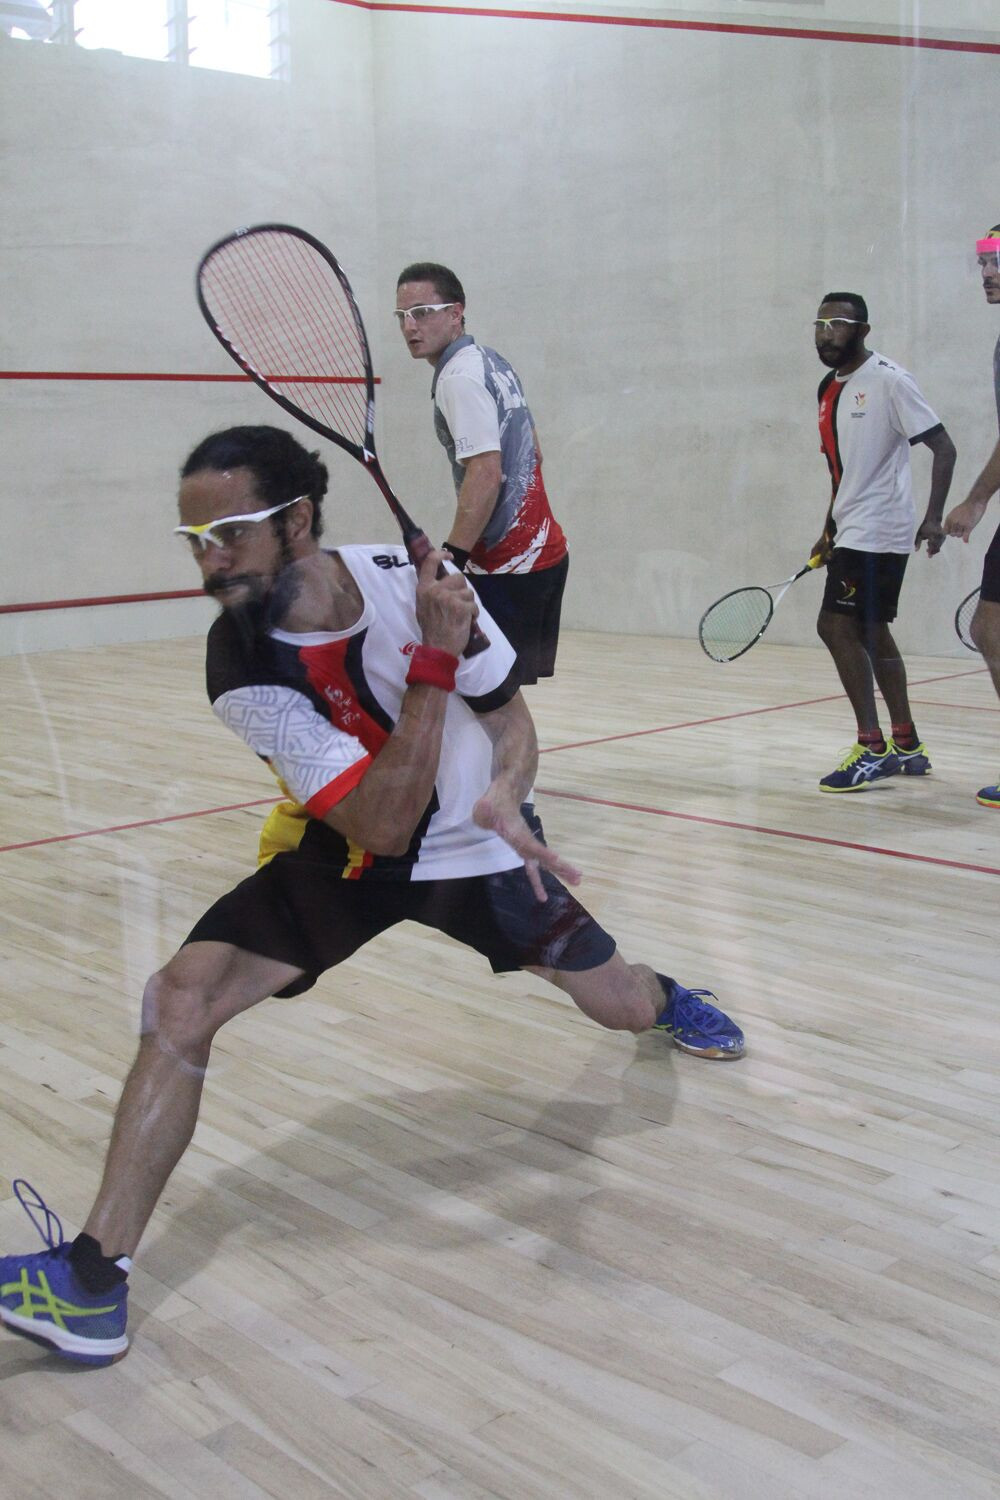 There were plenty of other medal events on the final Friday in Samoa, including squash ©Games News Service